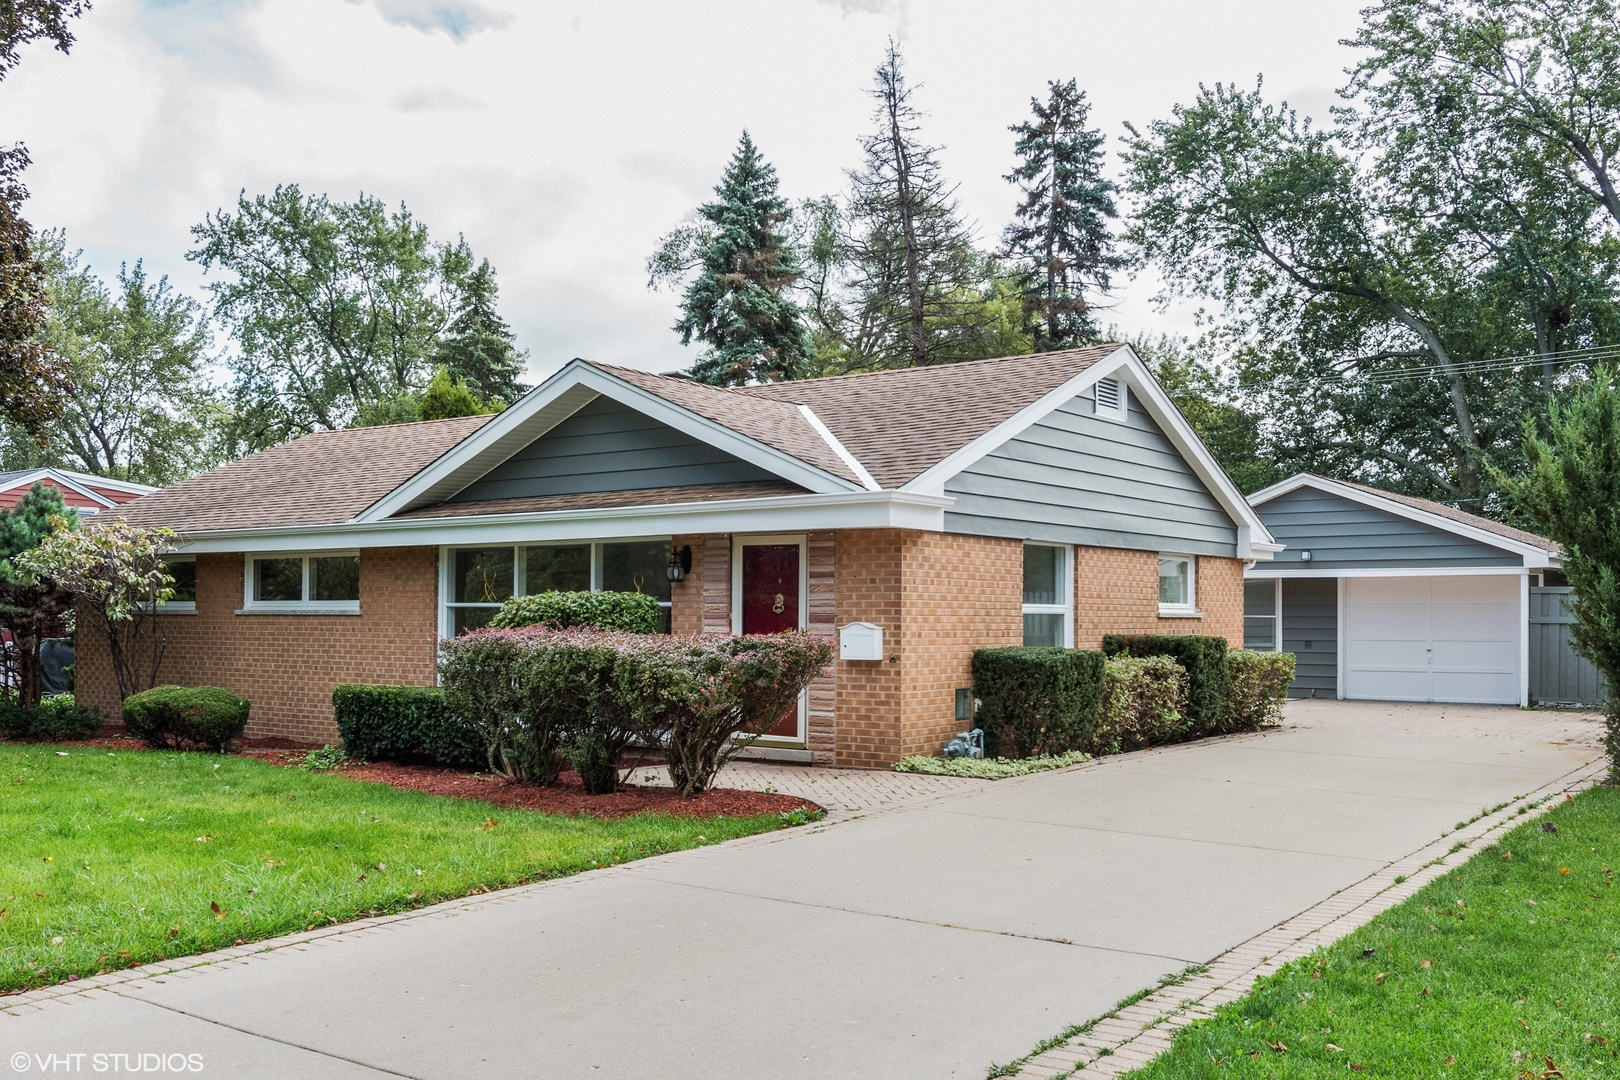 Single Story property for sale at 2543 Pick Drive, Glenview Illinois 60025